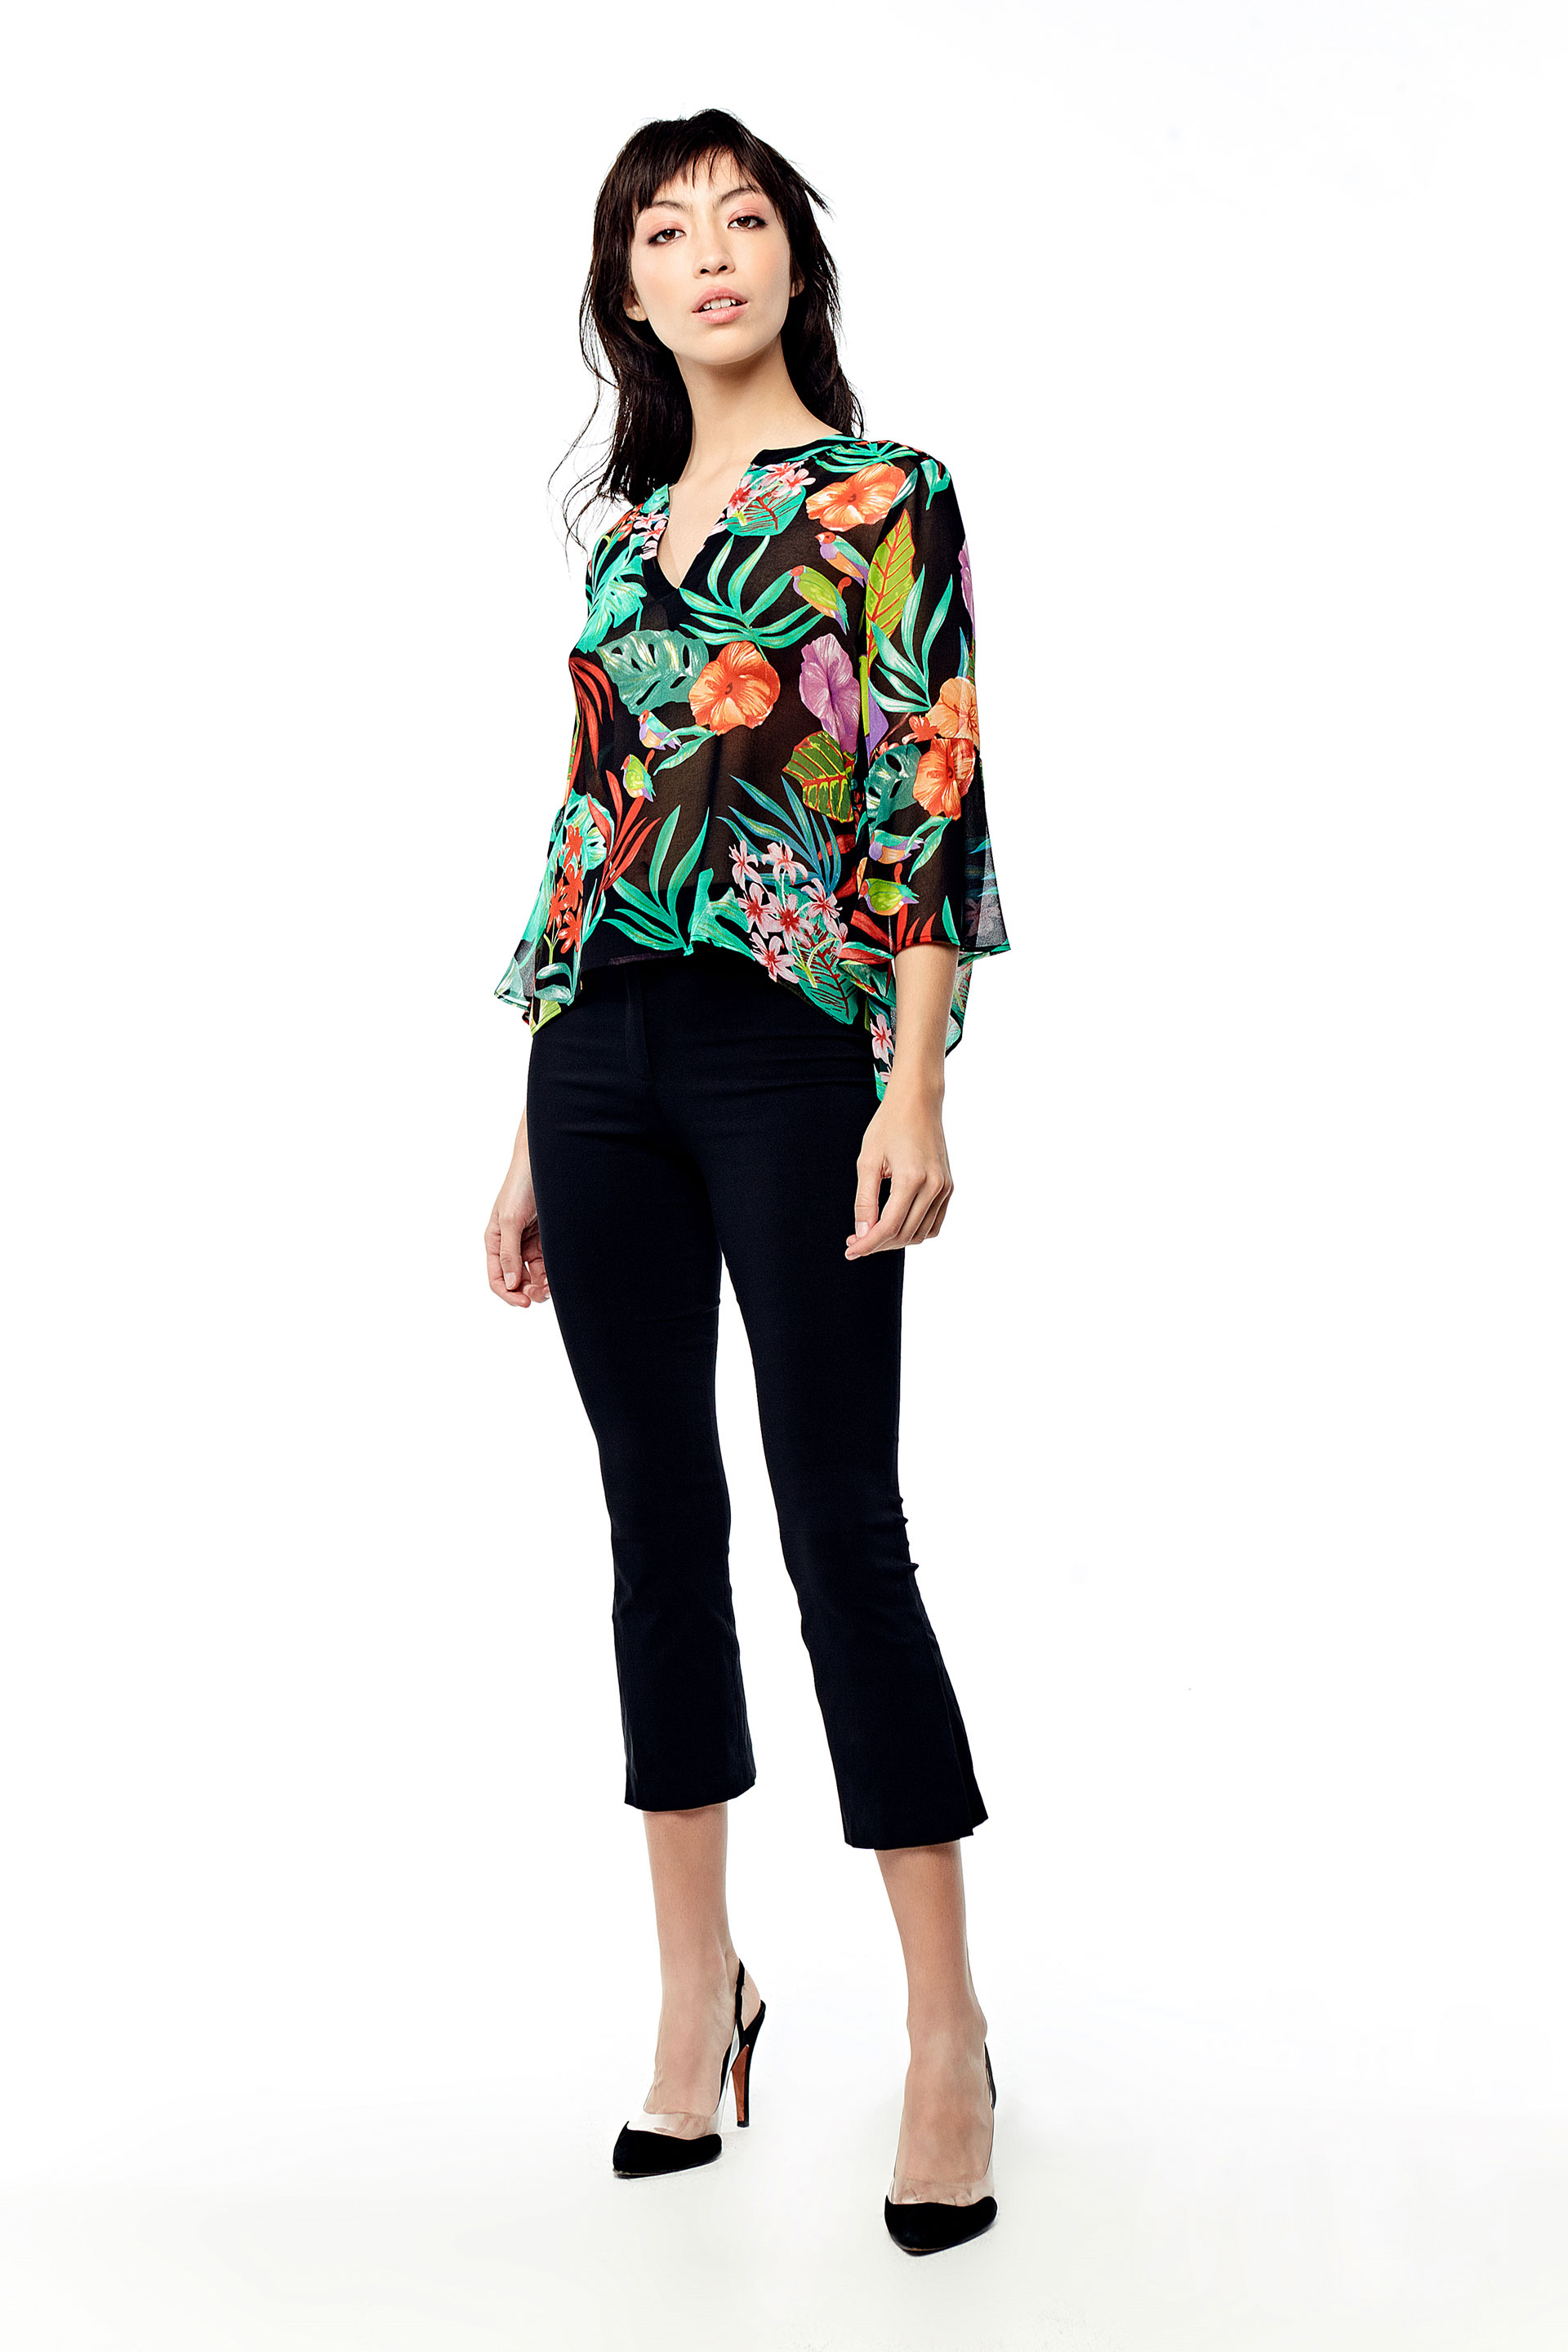 markova_blusa-tropical-_56-27-2019__picture-25852